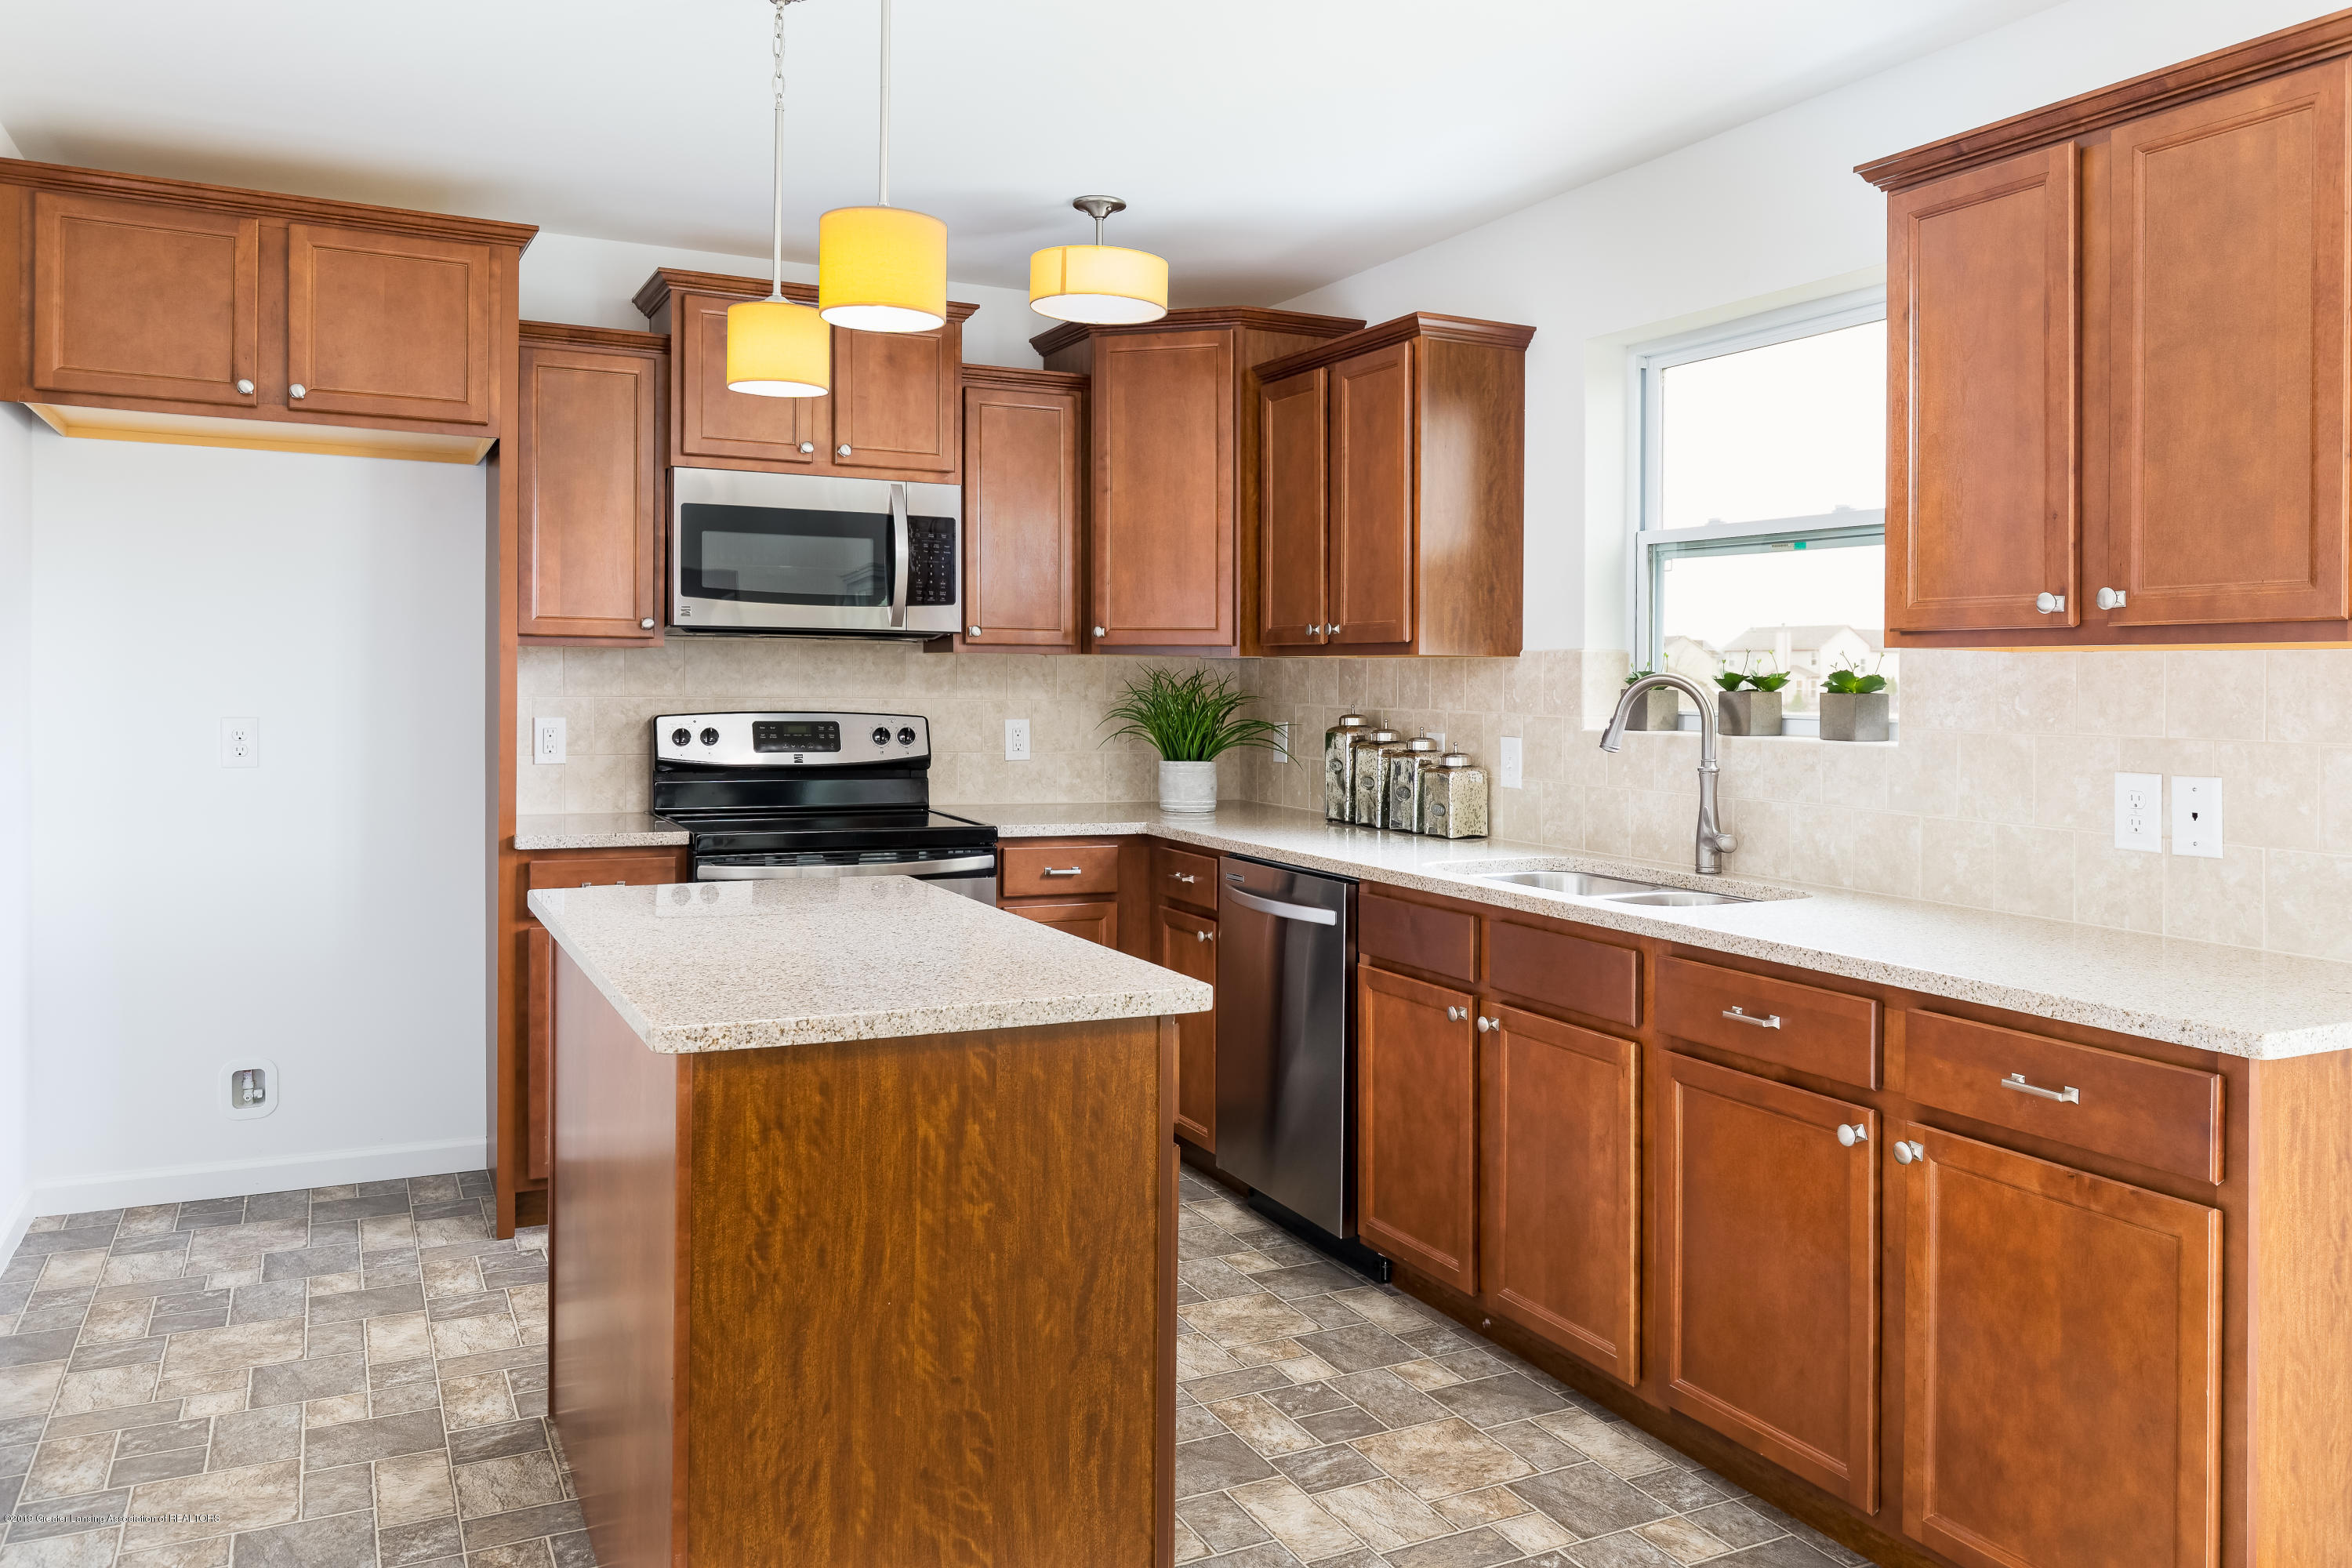 201 Ayla Drive - Kitchen TSP077-E2070-Staged-14 - 7